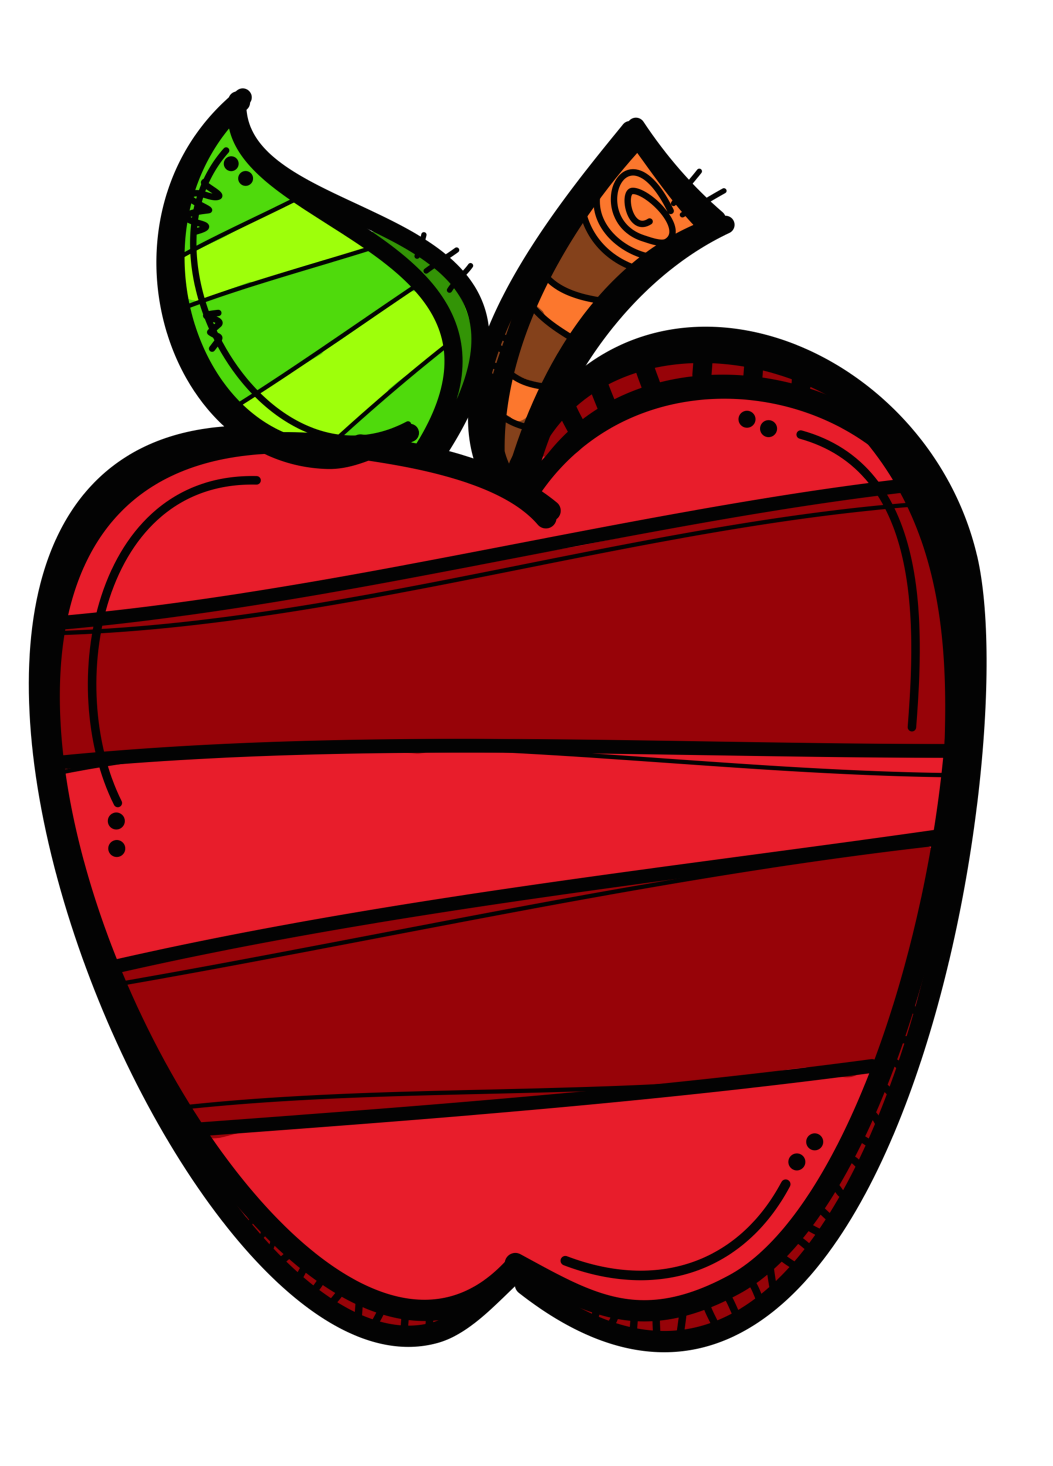 Apple clipart without square background download Pin by Kathleen Cummings on Art Ideas | Pinterest | Apples, Clip art ... download